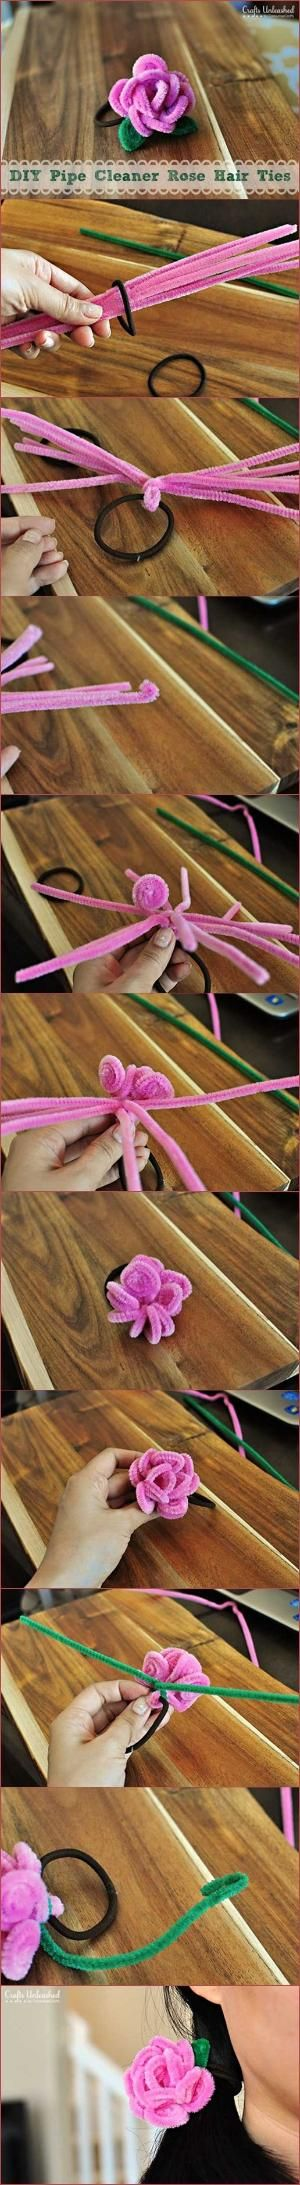 DIY Pipe Cleaner Rose Hair Ties by beryl